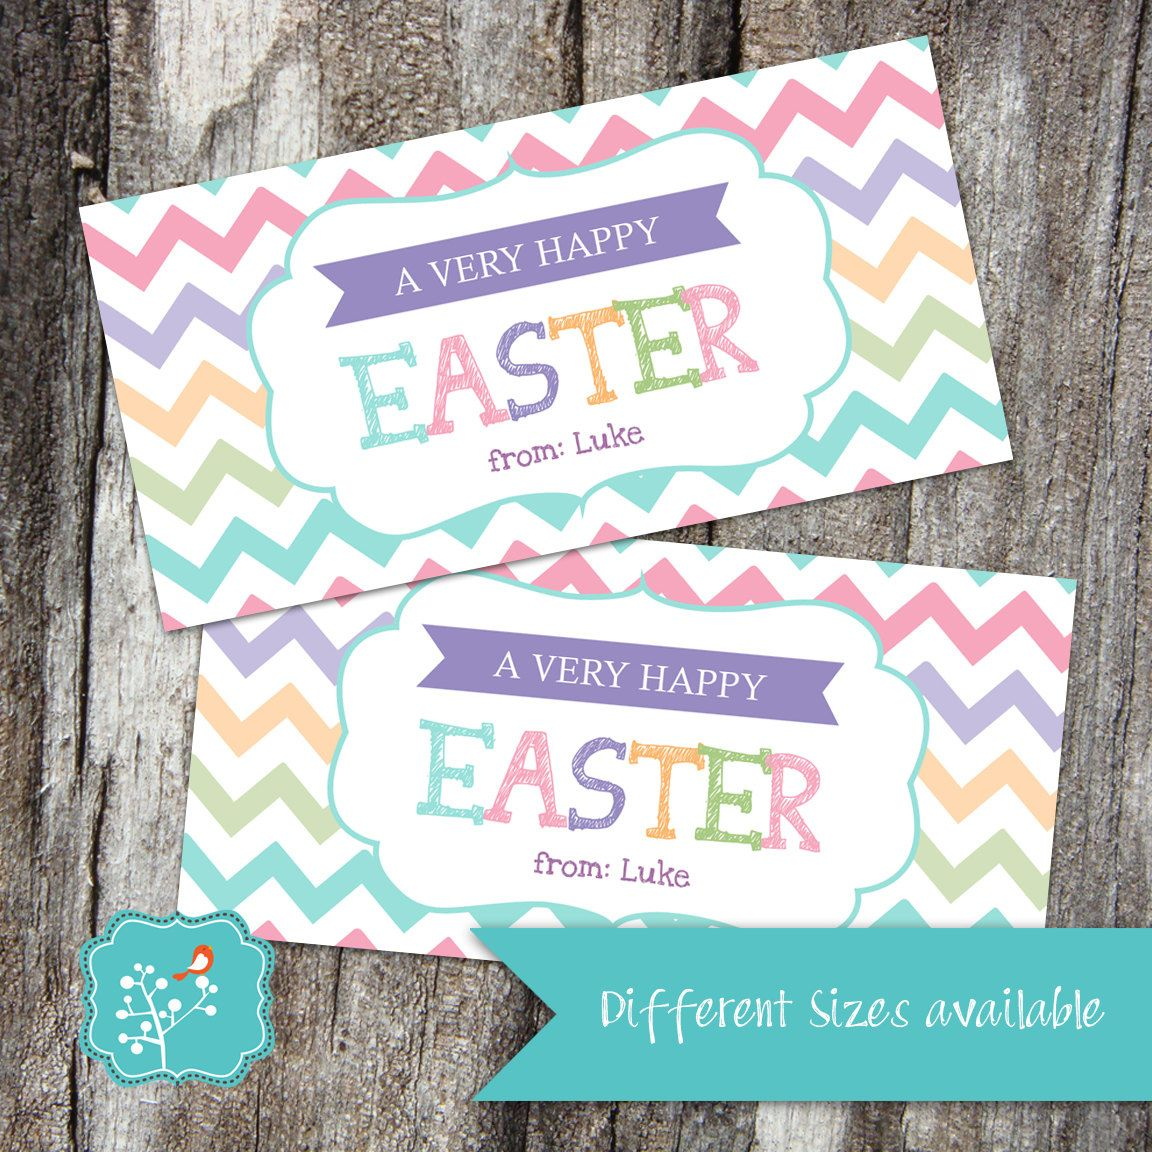 Bag topper easter treat bag party favor tag personalized bag bag topper easter treat bag party favor tag personalized bag toppers printable negle Image collections